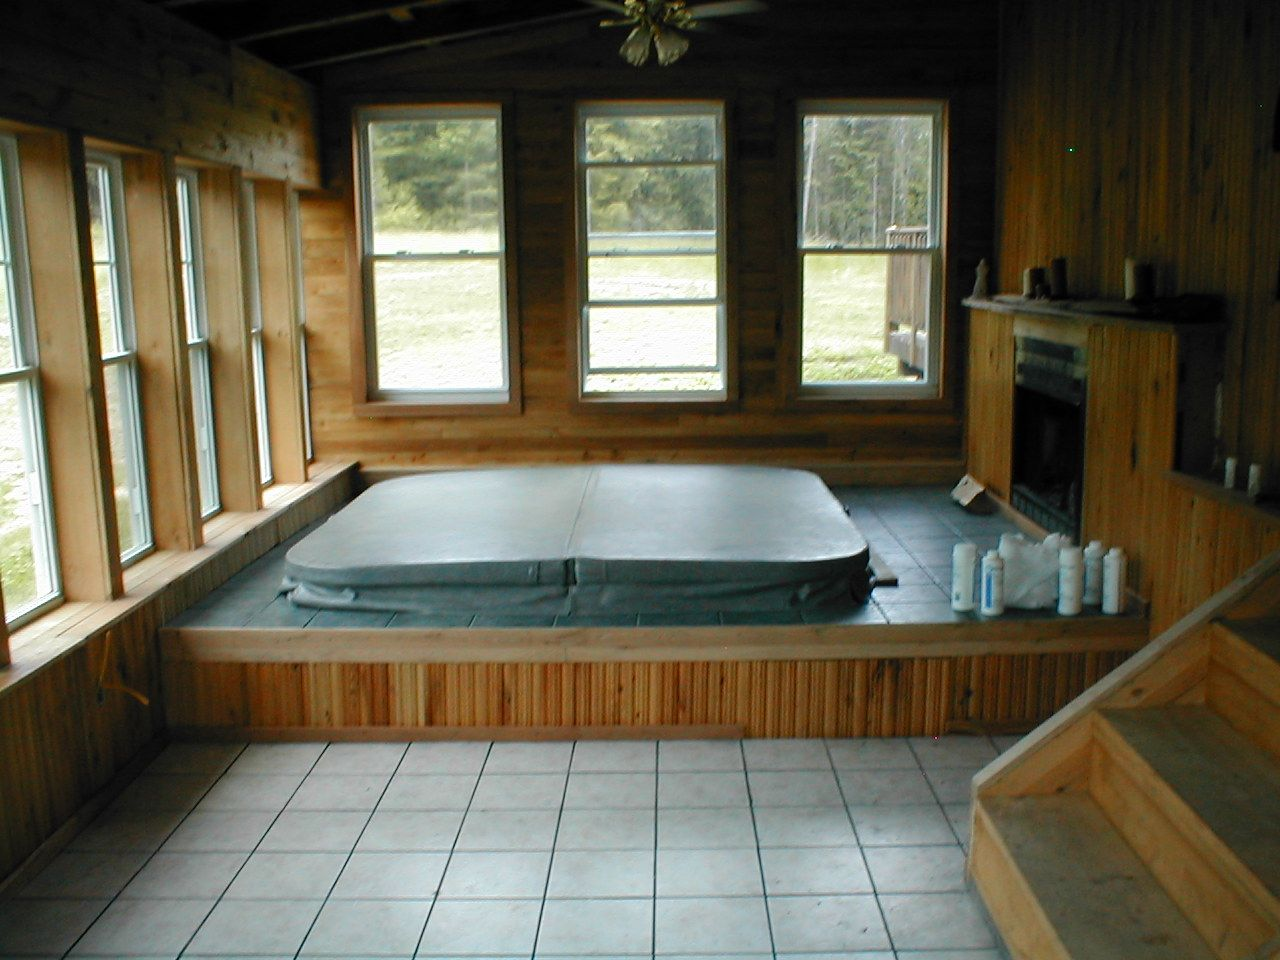 Pin By Christi Smith On Cabin Hot Tub Room Indoor Hot Tub Inground Hot Tub